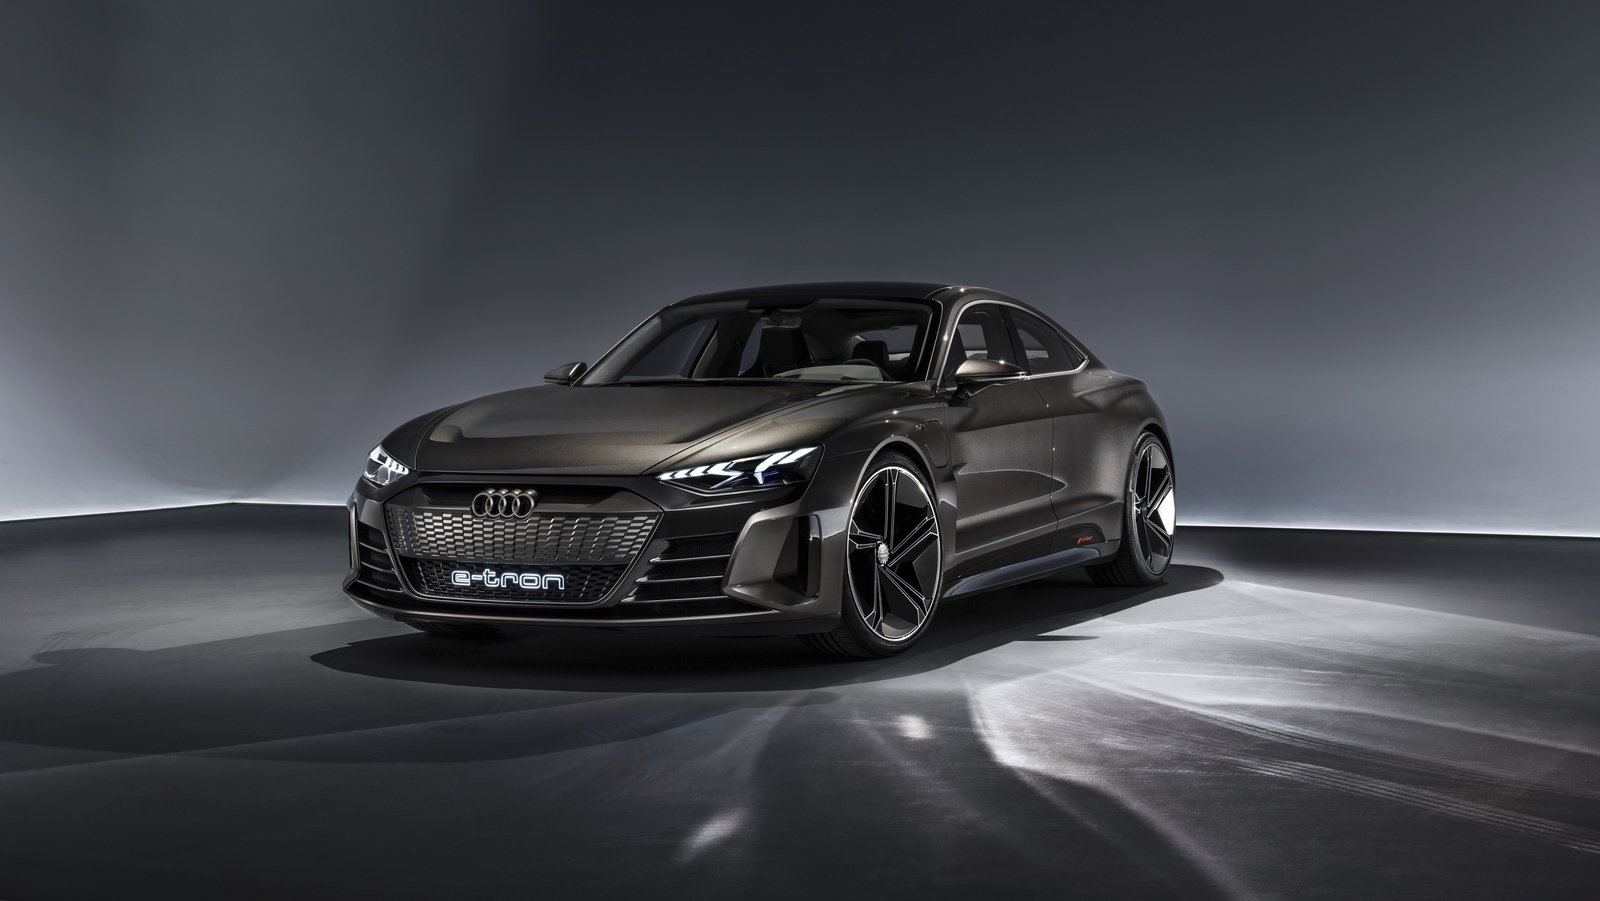 the audi e tron gt concept 39 s appearance in avengers 4 signals audi 39 s return to the marvel. Black Bedroom Furniture Sets. Home Design Ideas